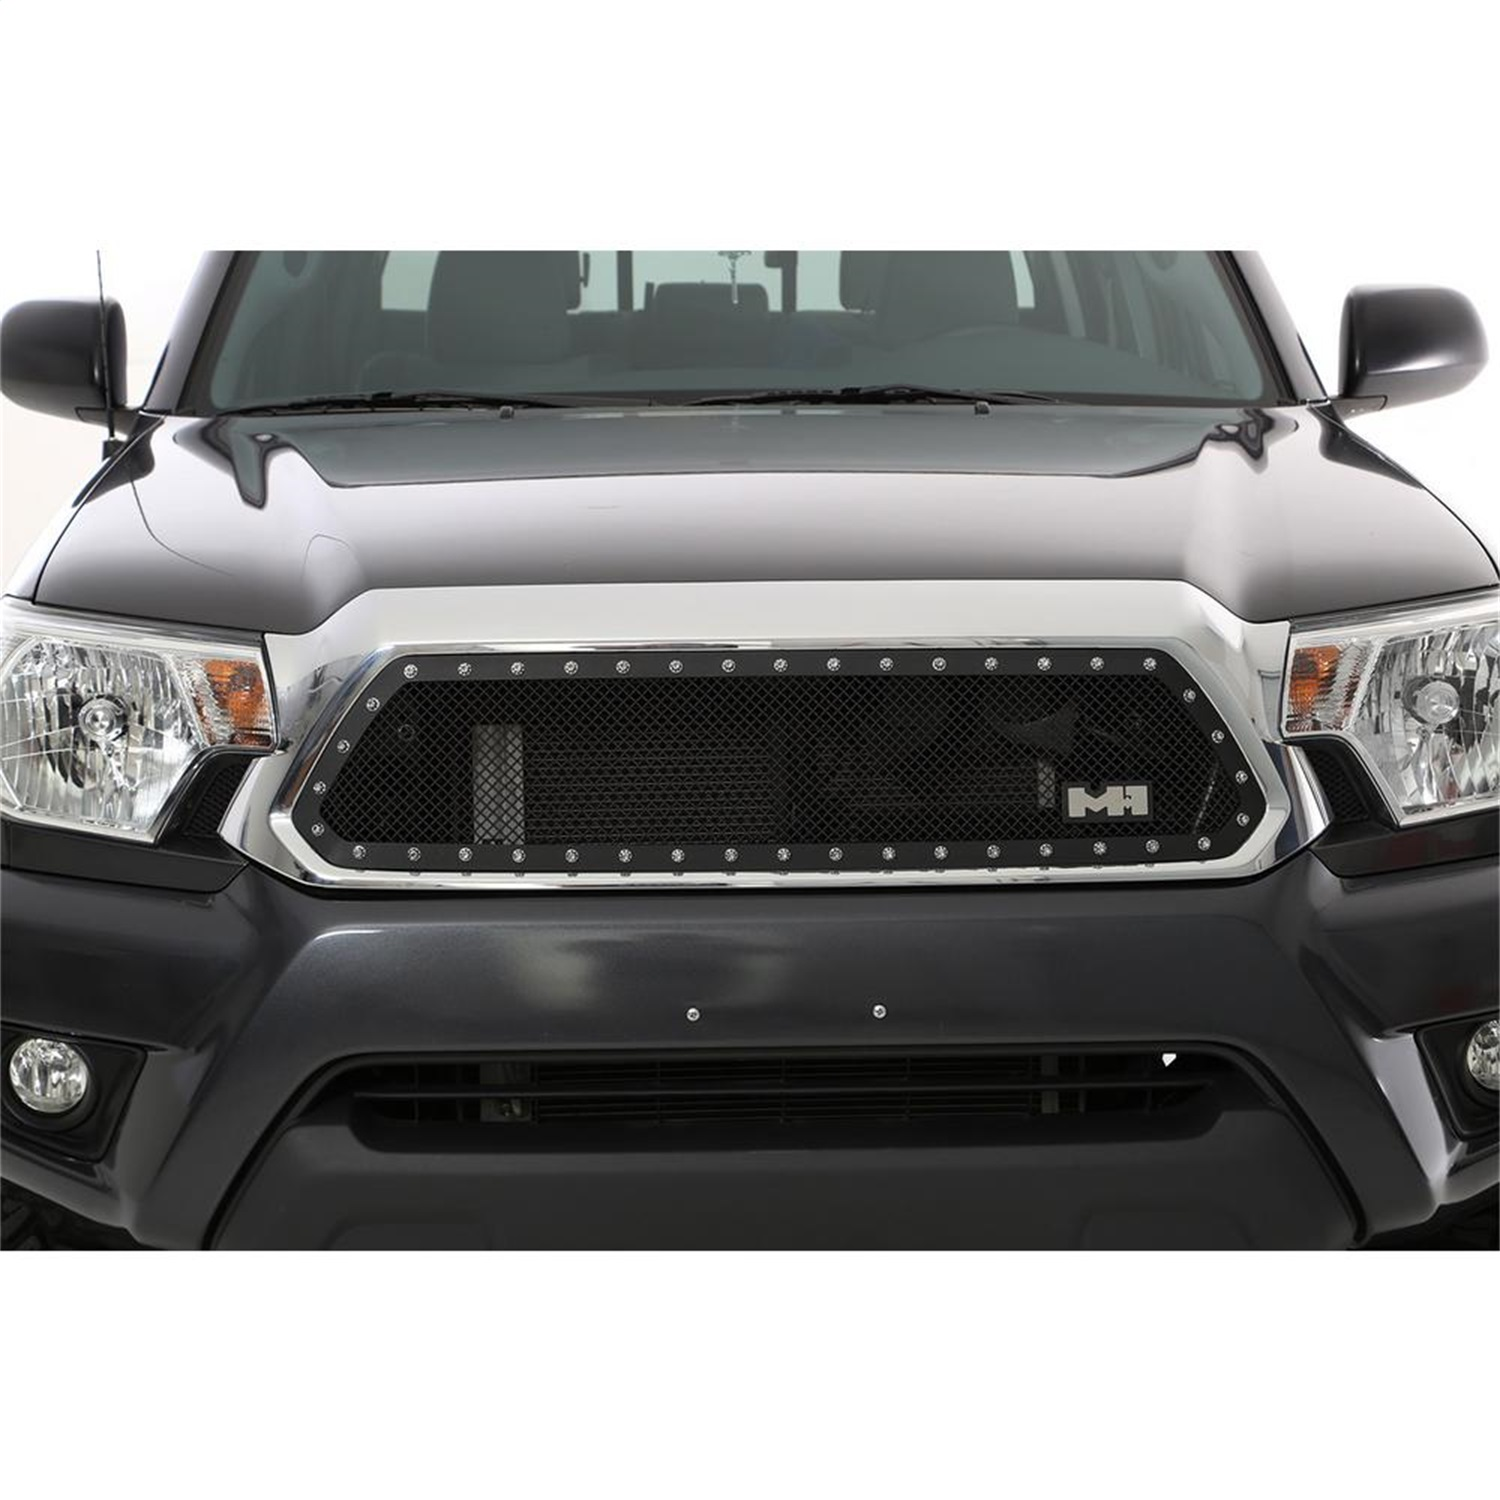 Smittybilt 615845 M1 Wire Mesh Grille Fits 16-19 Tacoma